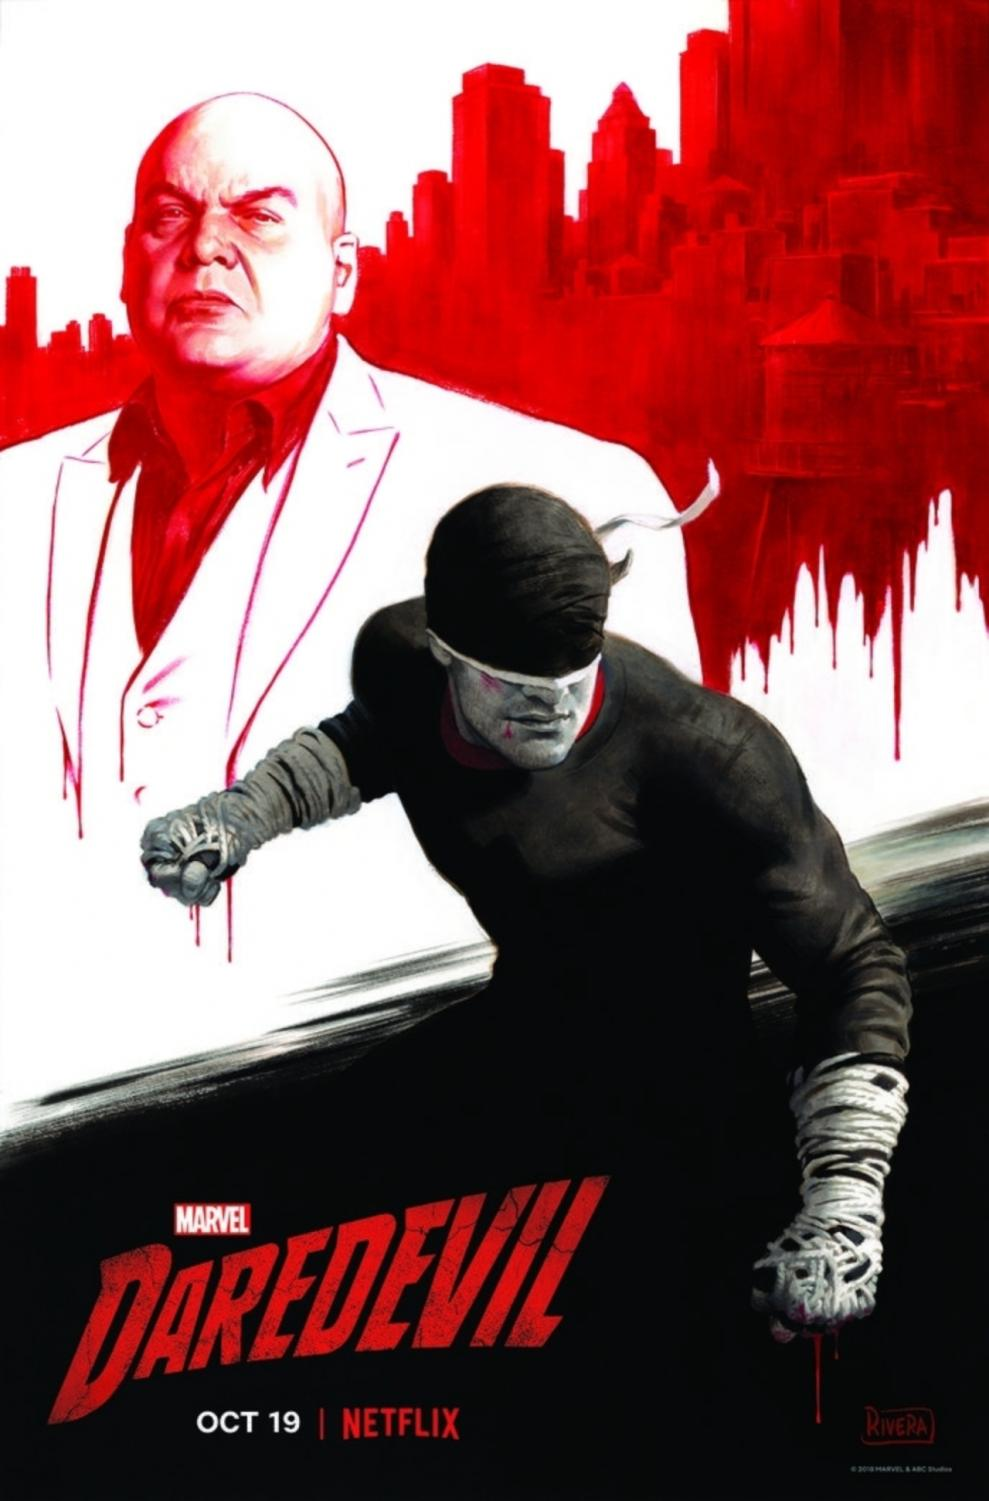 A poster for 'Daredevil' season 3 featuring stars Vincent D'Onofrio (Wilson Fisk/Kingpin) and a masked Carlie Cox (Matt Murdock/Daredevil).